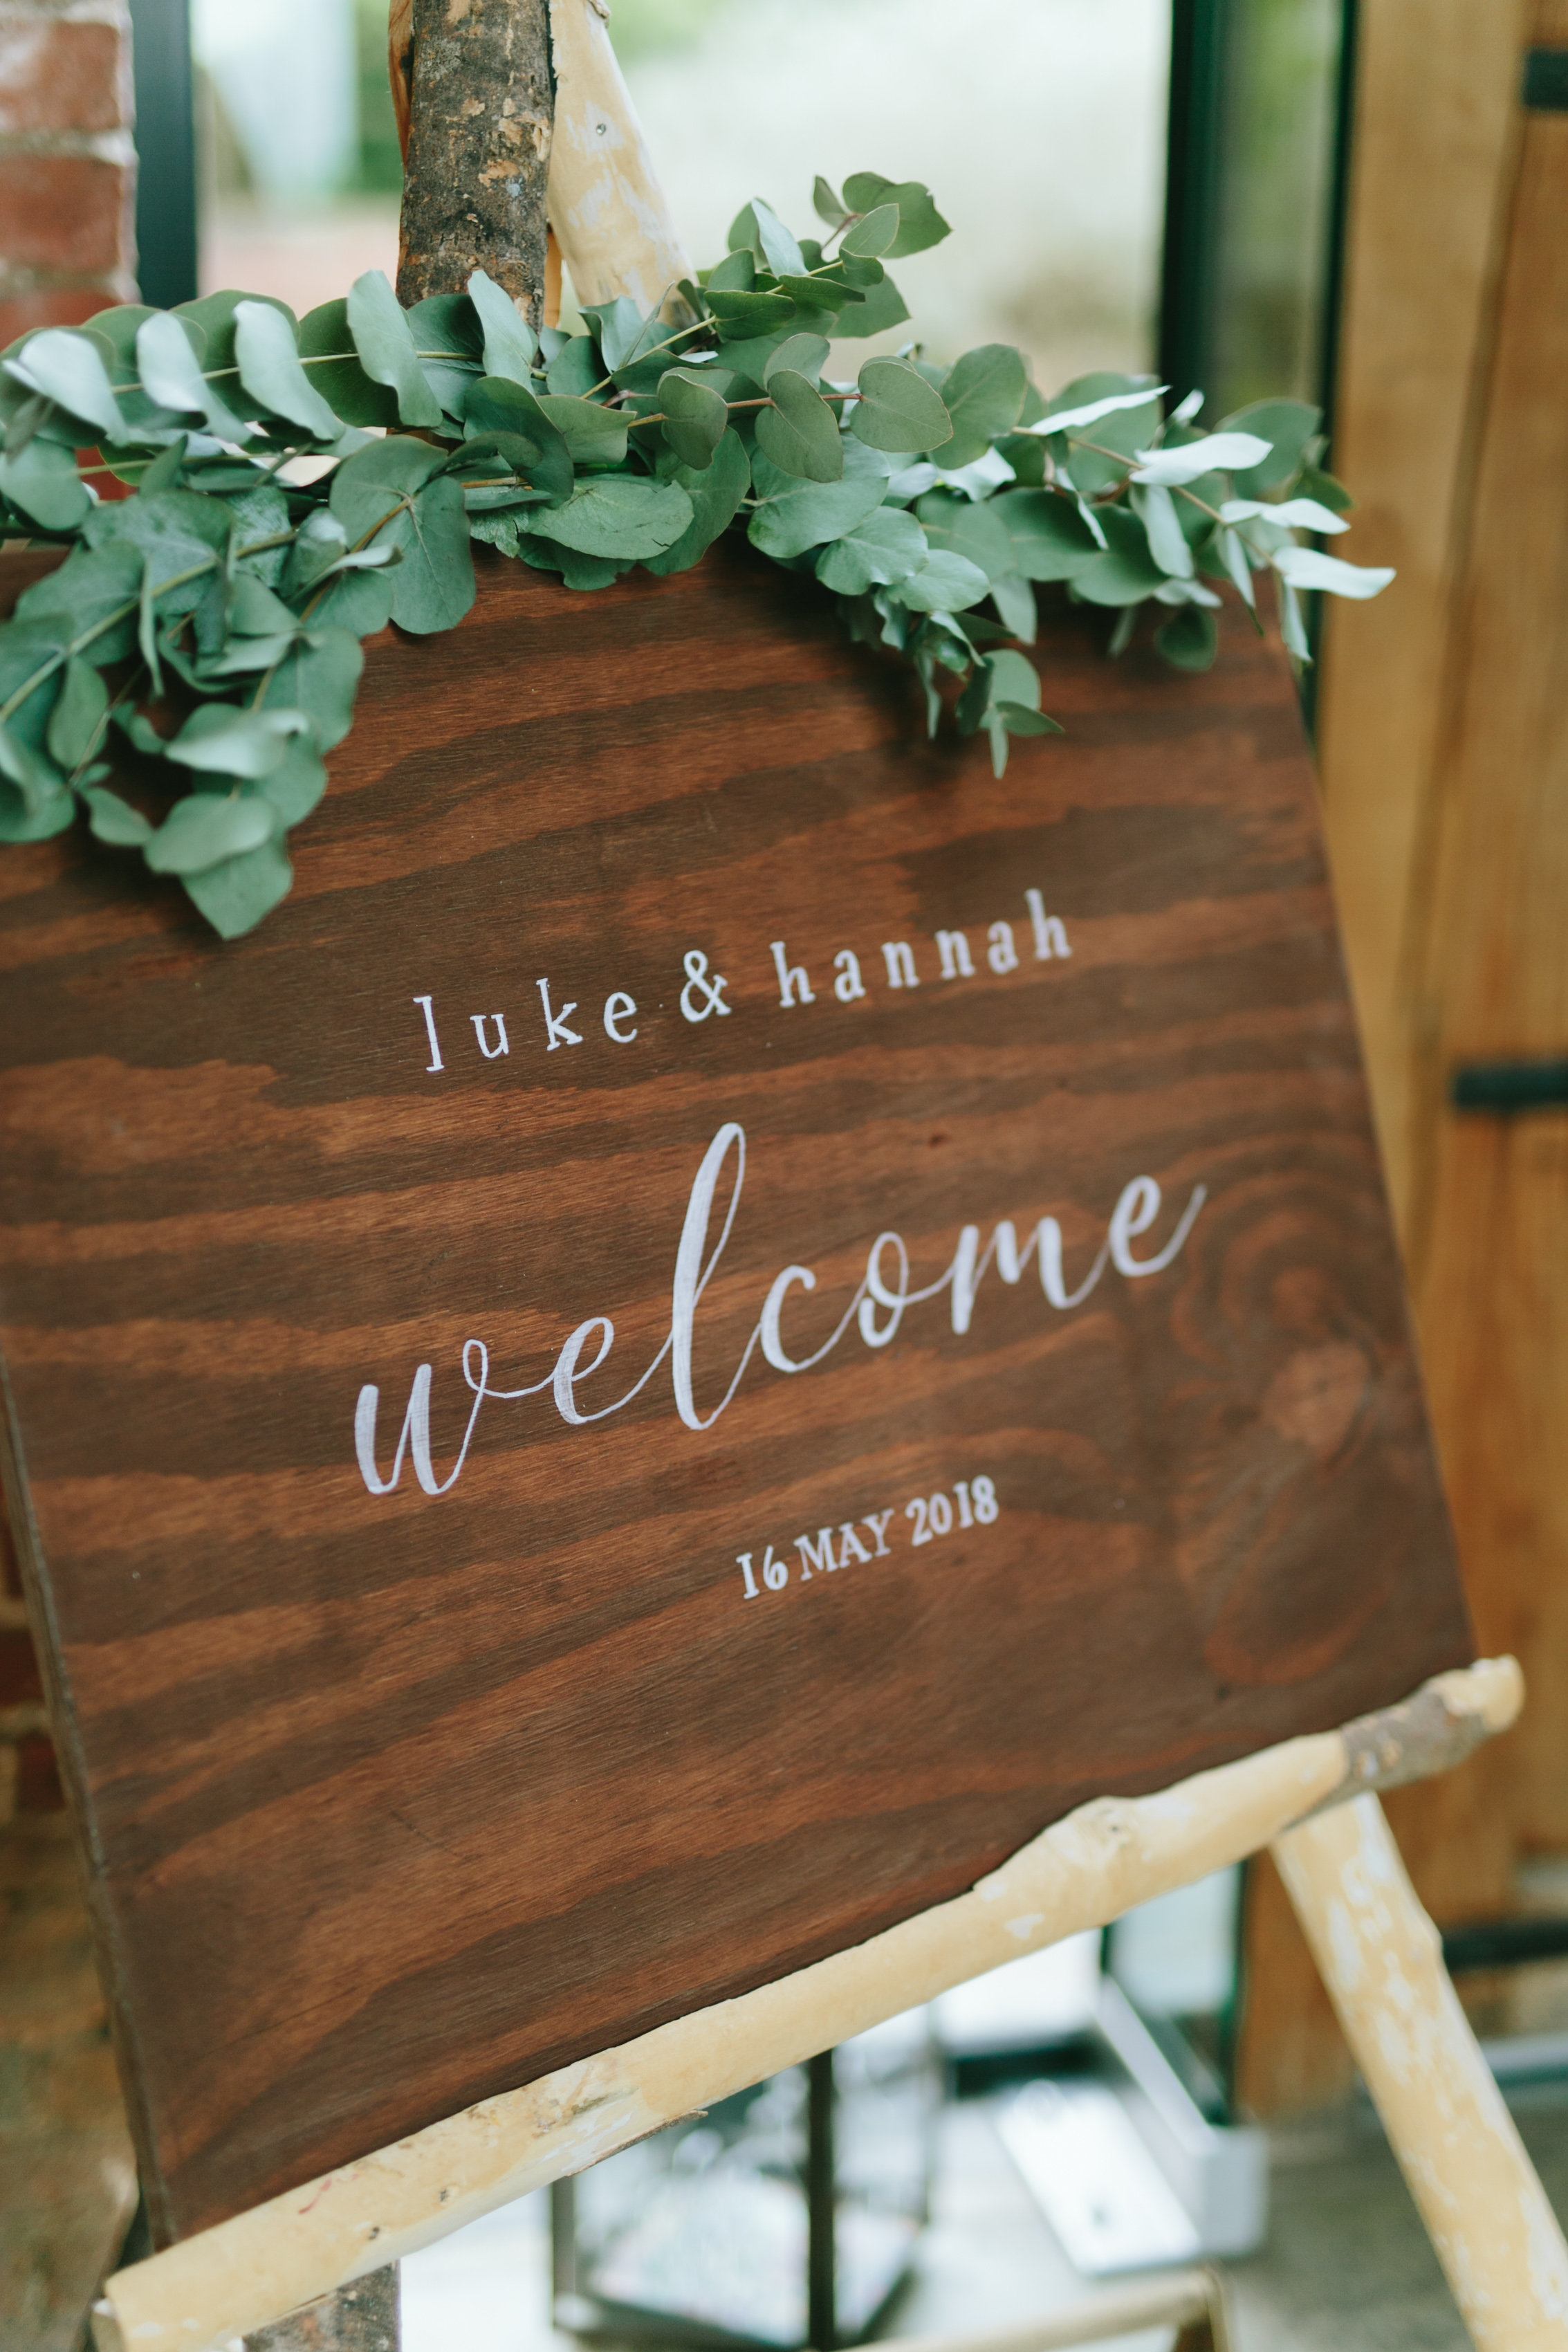 The Best Little Details from Our Wedding - How We Made Our Wedding Incredibly Personal - Choosing a Meaningful Date